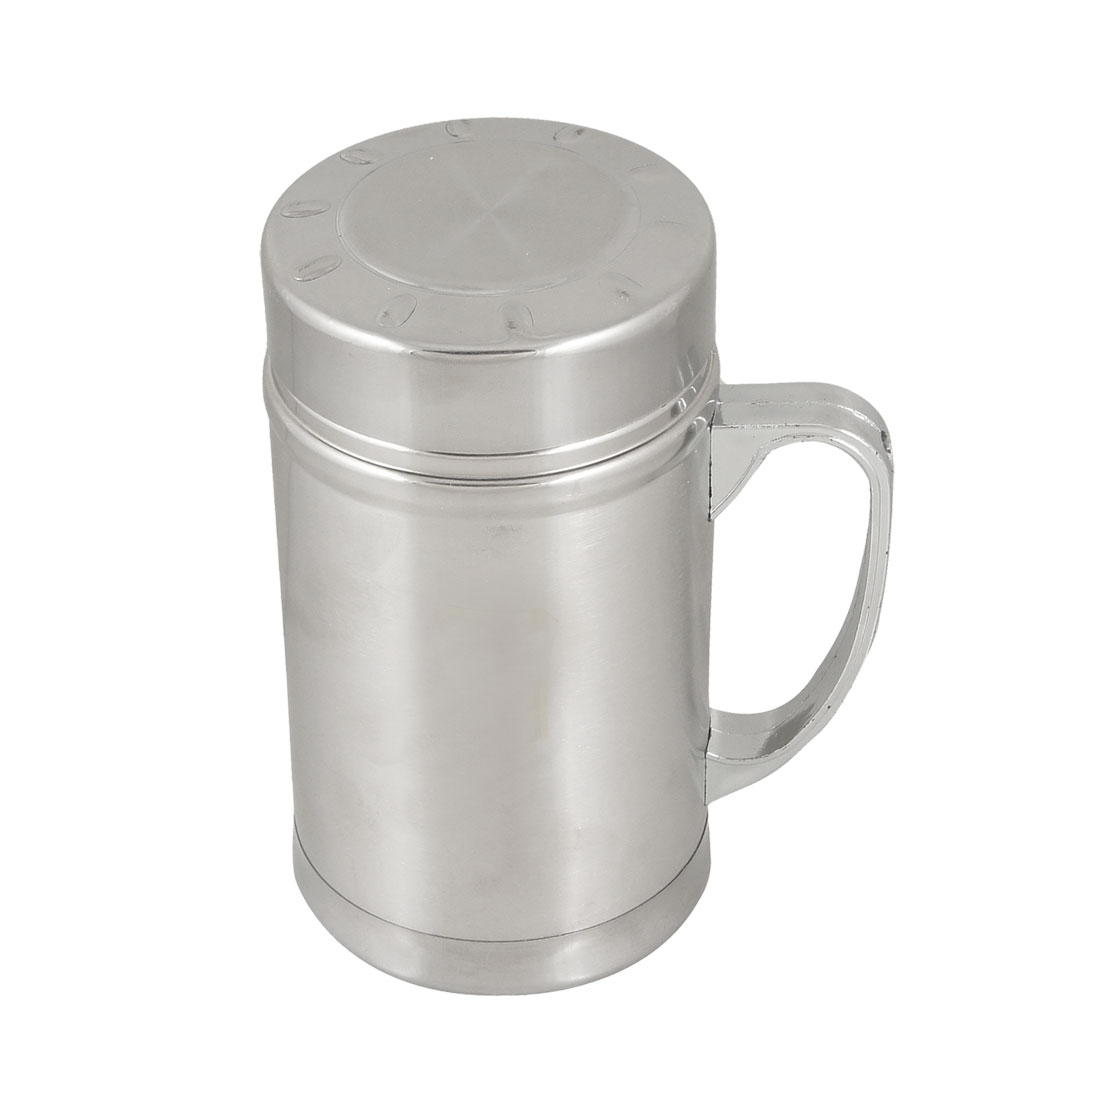 Silver Tone 380ml Stainless Steel Office Home Strainer Tea Cup